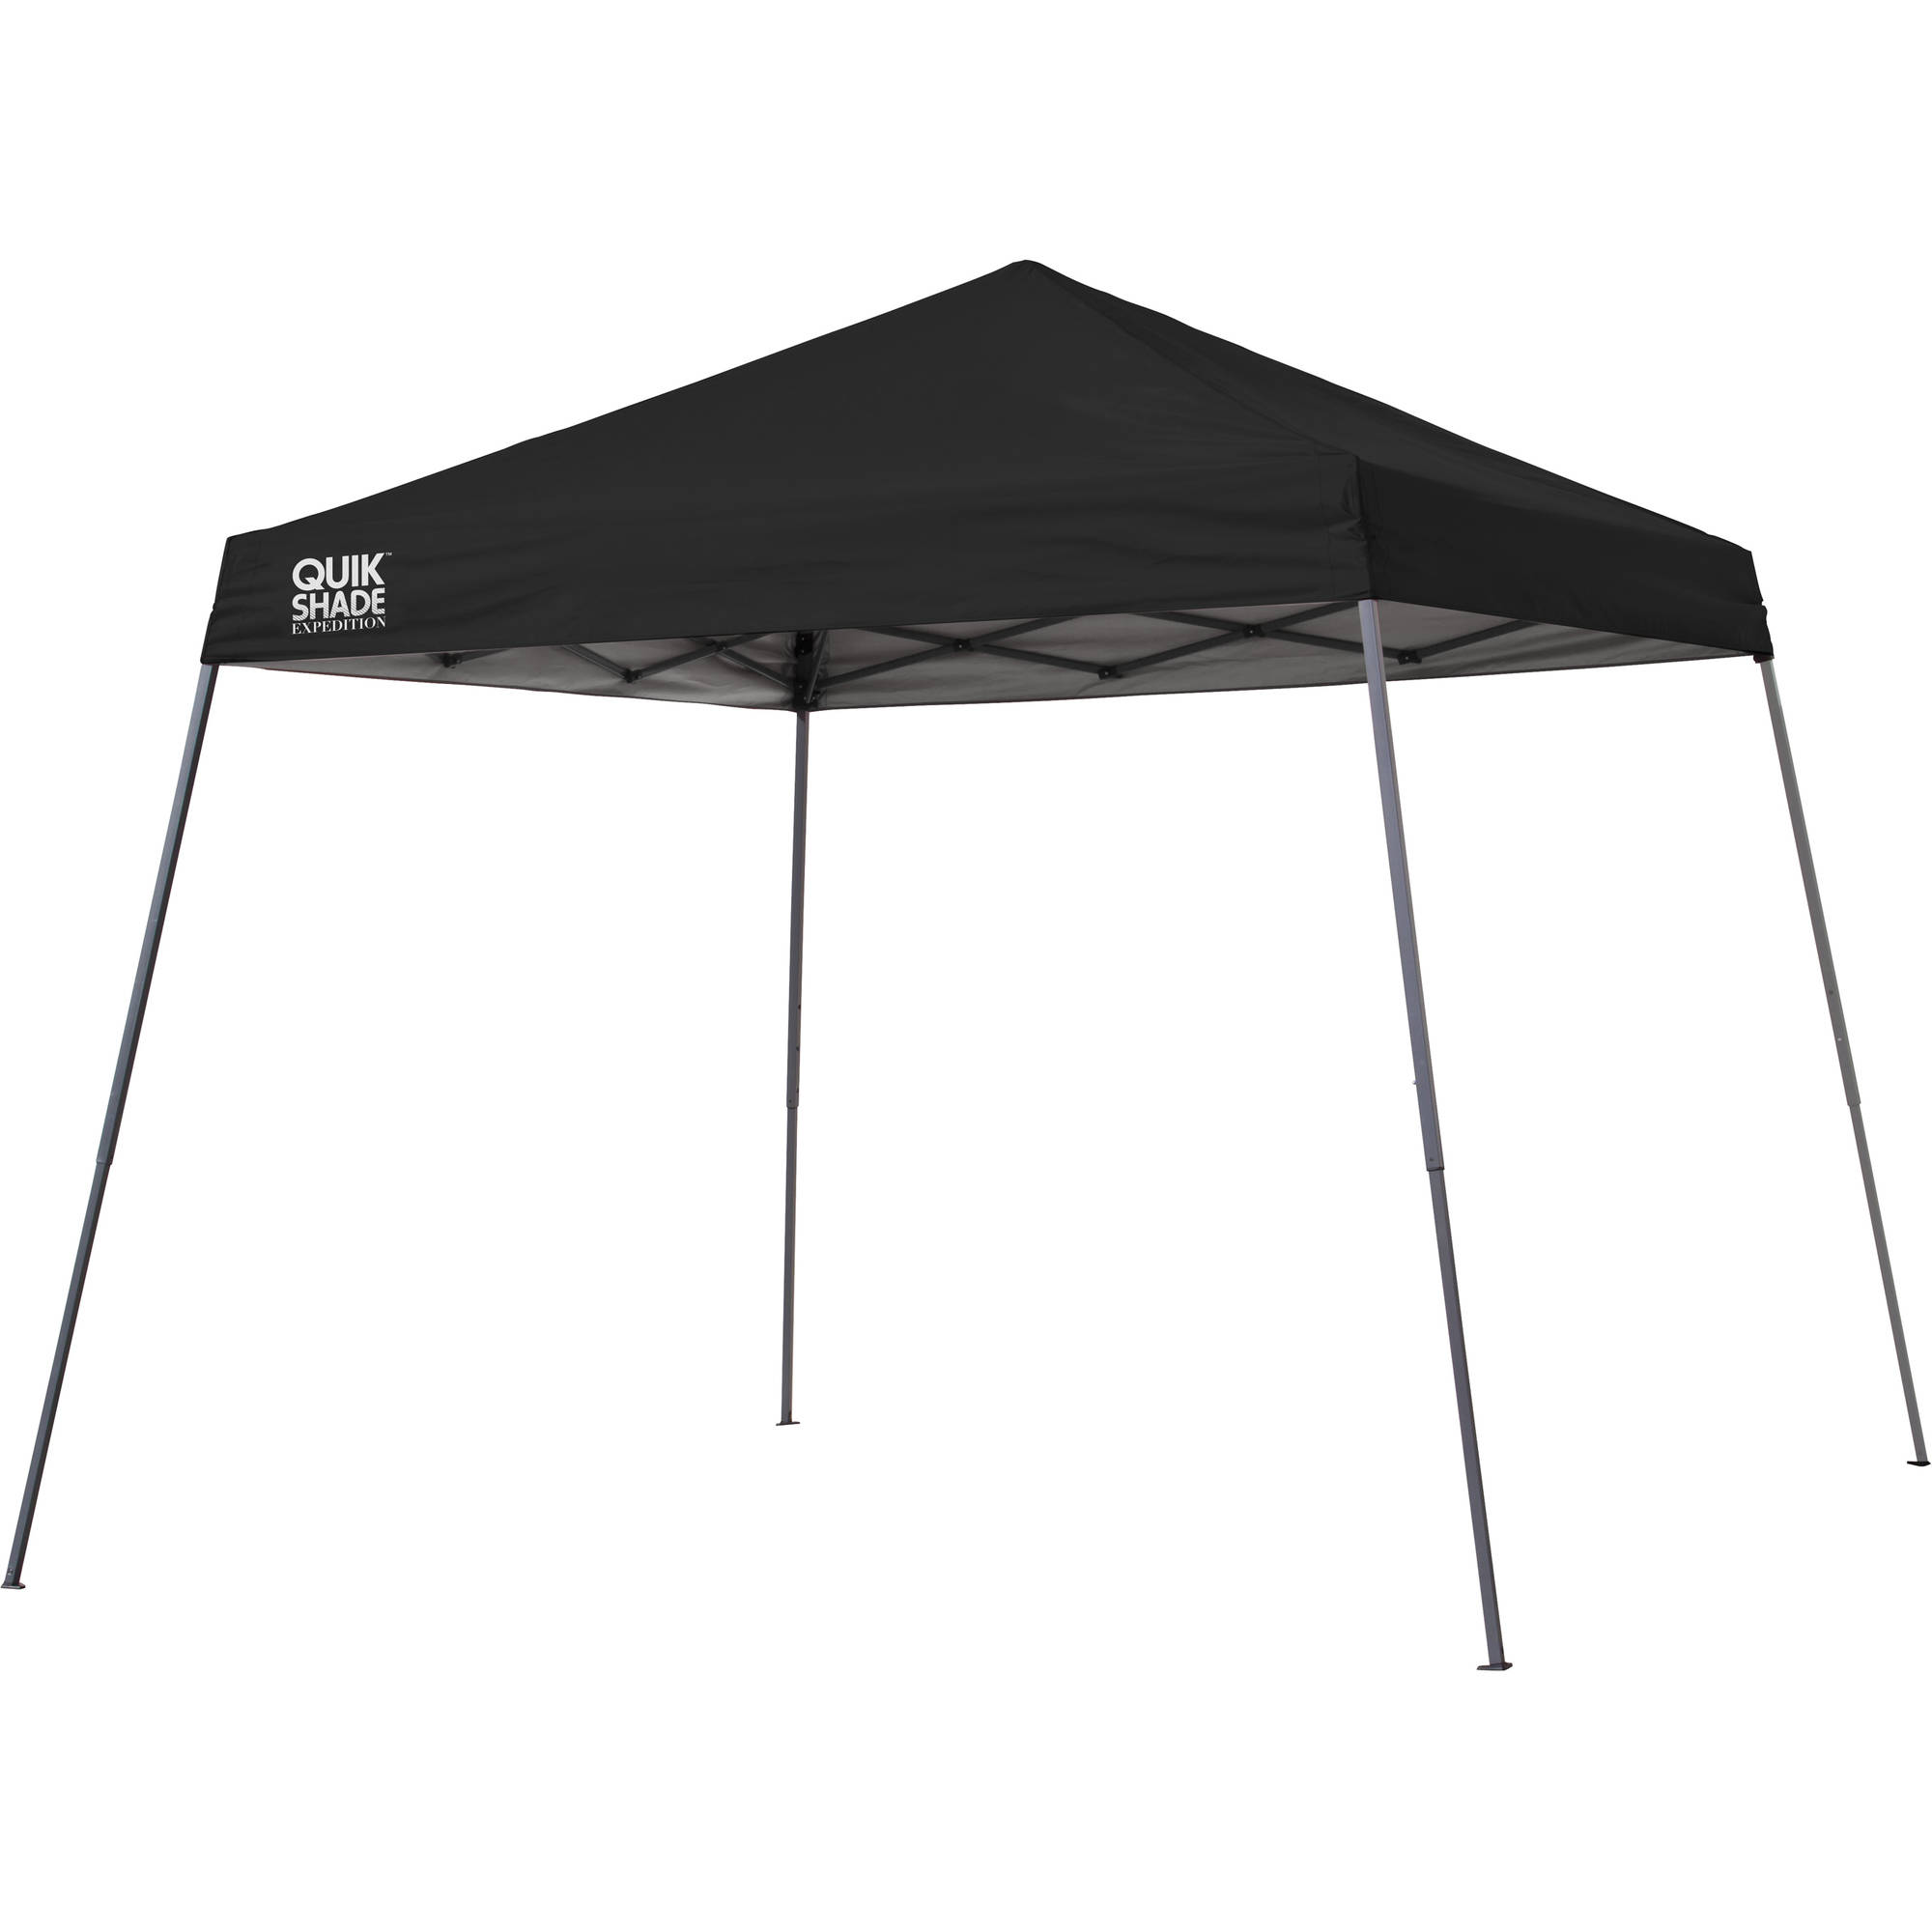 Quik Shade Expedition 10u0027x10u0027 Slant Leg Instant Canopy (64 sq. ft  sc 1 st  Walmart & Quik Shade Expedition 10u0027x10u0027 Slant Leg Instant Canopy (64 sq. ft ...